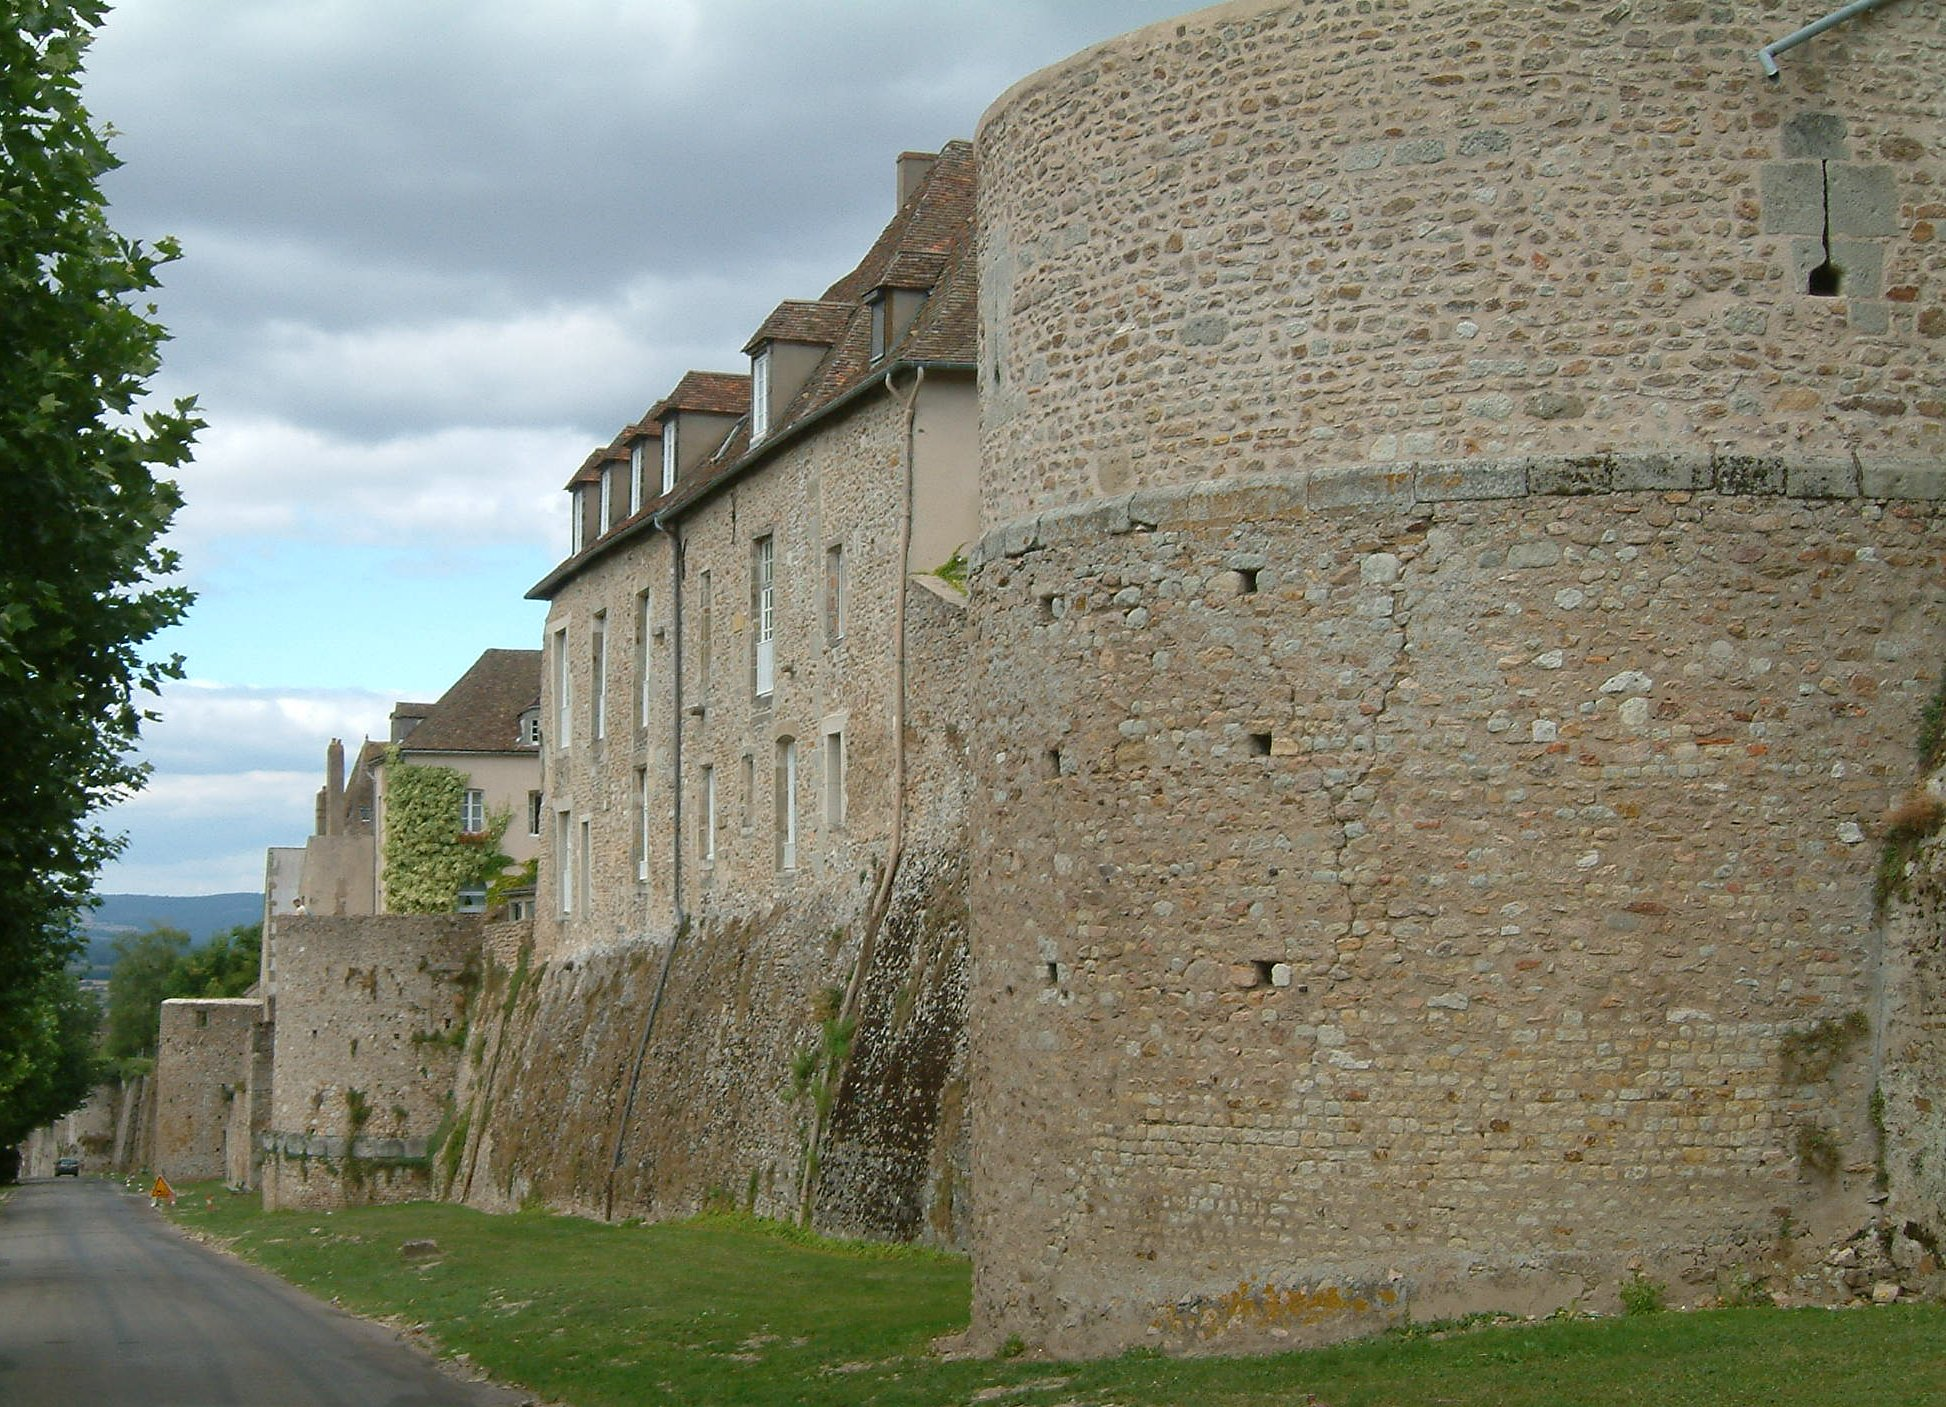 Remparts gallo-romains d'Autun.